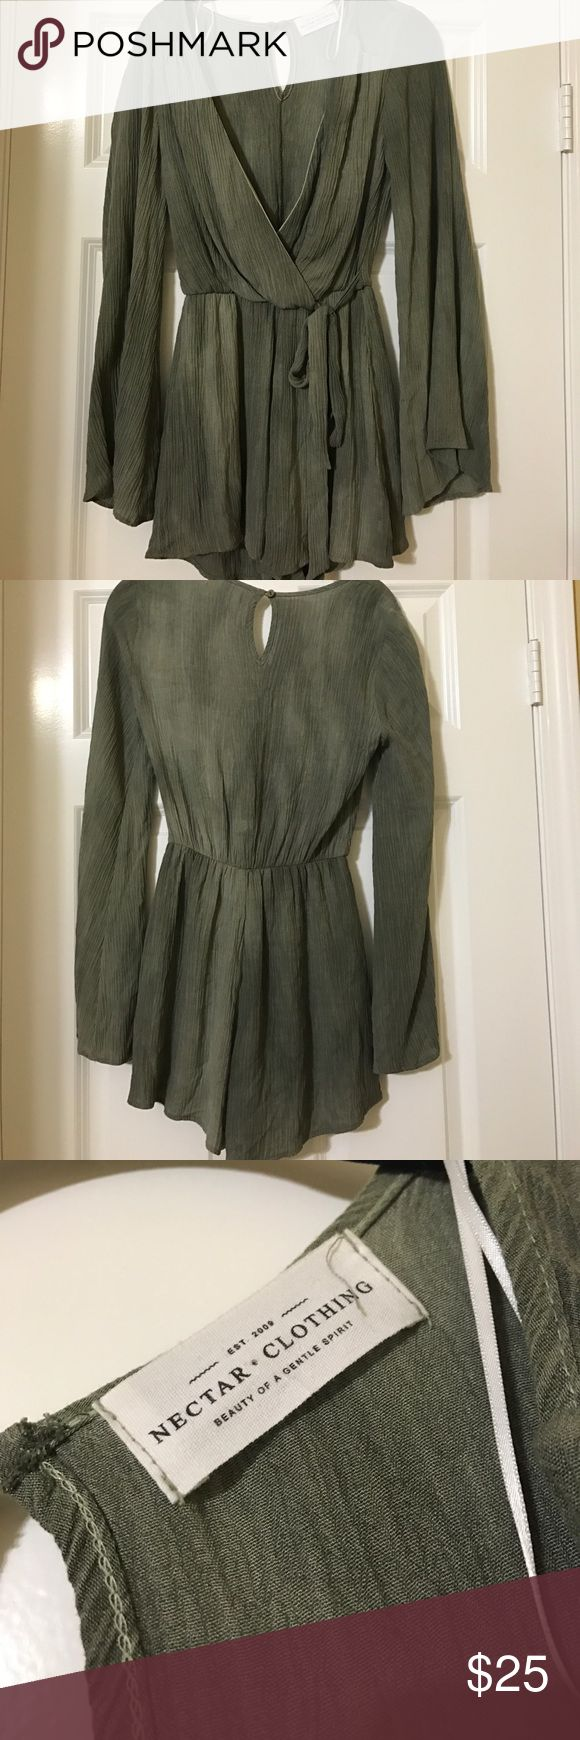 """NWOT 🌴 GREEN LONG SLEEVE ROMPER NEVER WORN but tags are removed! Size is unknown but I am usually very petite and it's a bit looser on me so I assume it's a S/M. From boutique """"Nectar"""" with only a few locations in southern California. listed as free people bc they are v similar! Sleeves flare out at ends. Cut in middle is pretty low but can either be worn open with a bralette or saftey pinned closed. The top left is becoming ripped (as pictured) which is why they sold it to me at a 10%…"""